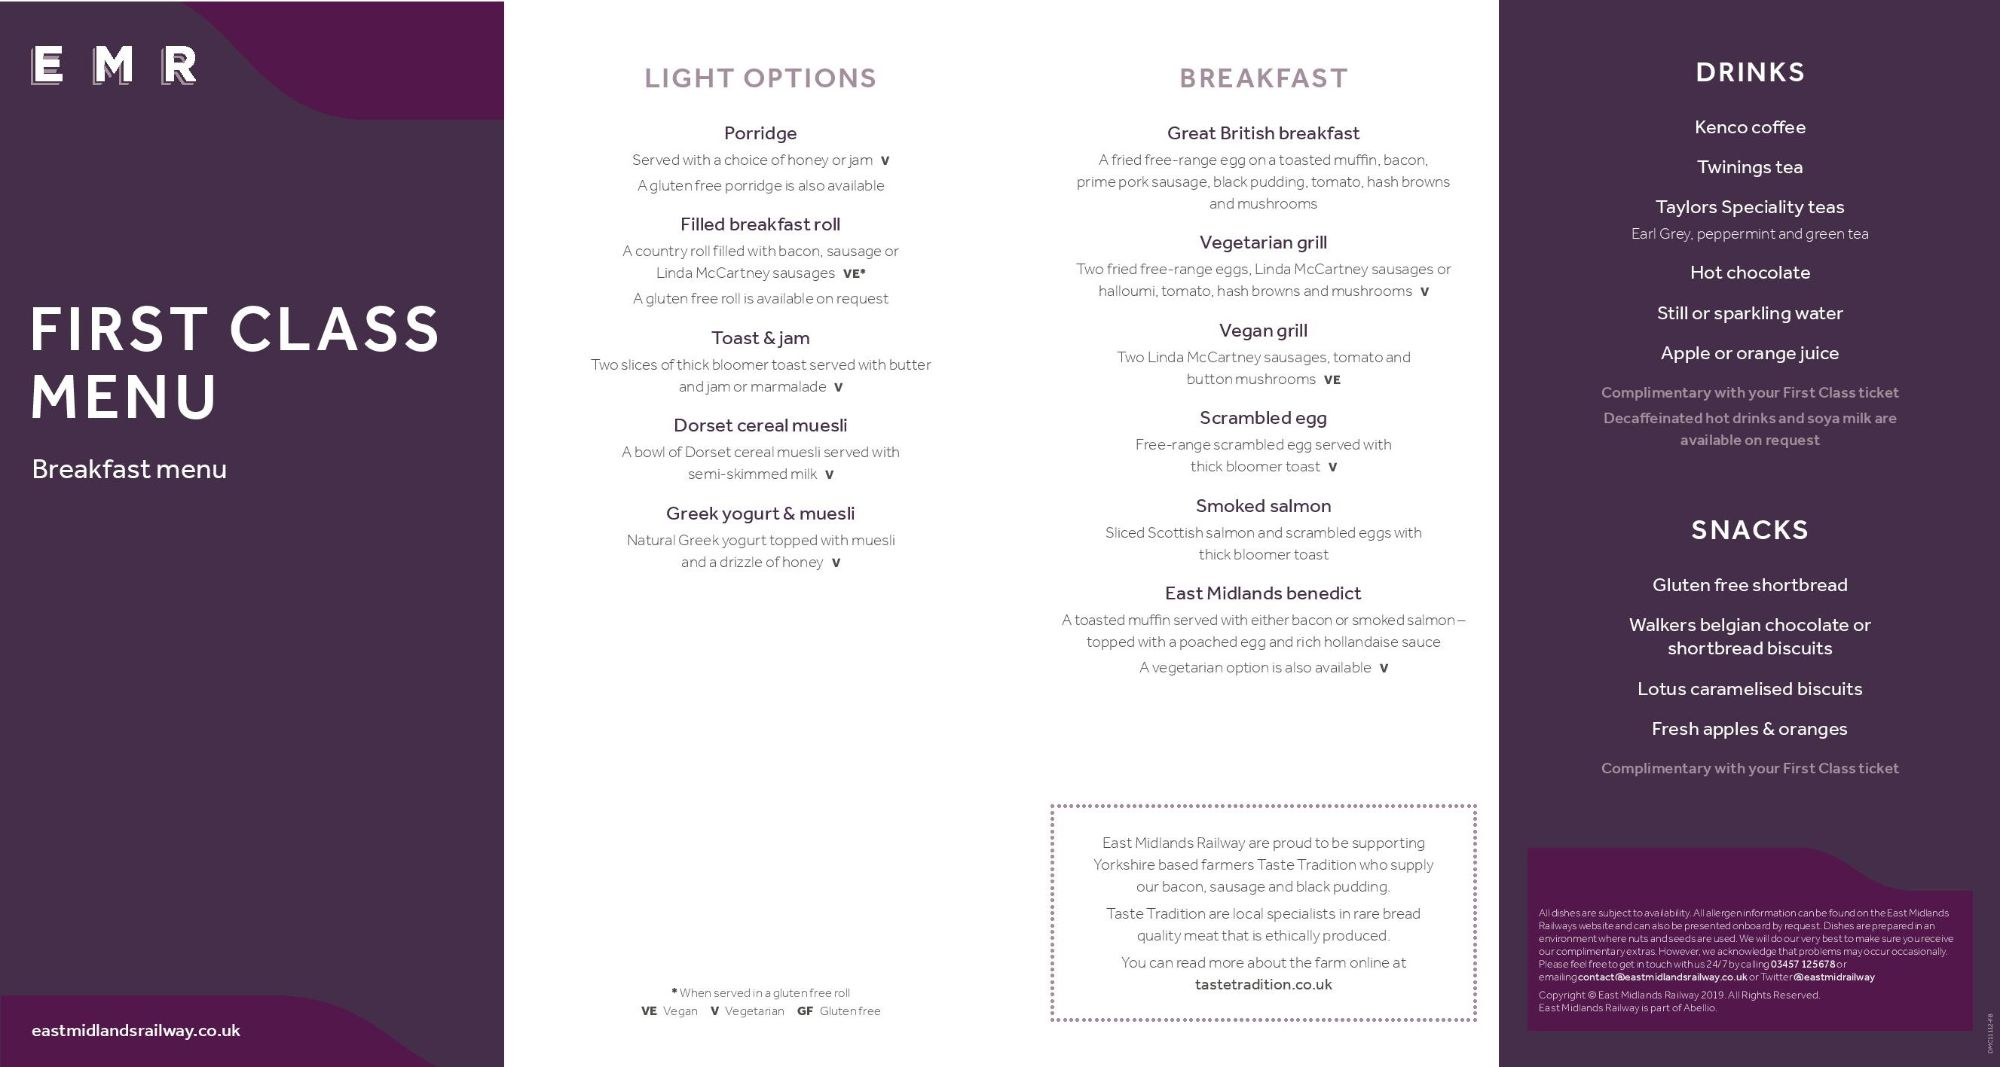 Image showing the East Midlands Railway first class breakfast menu circa 2021.